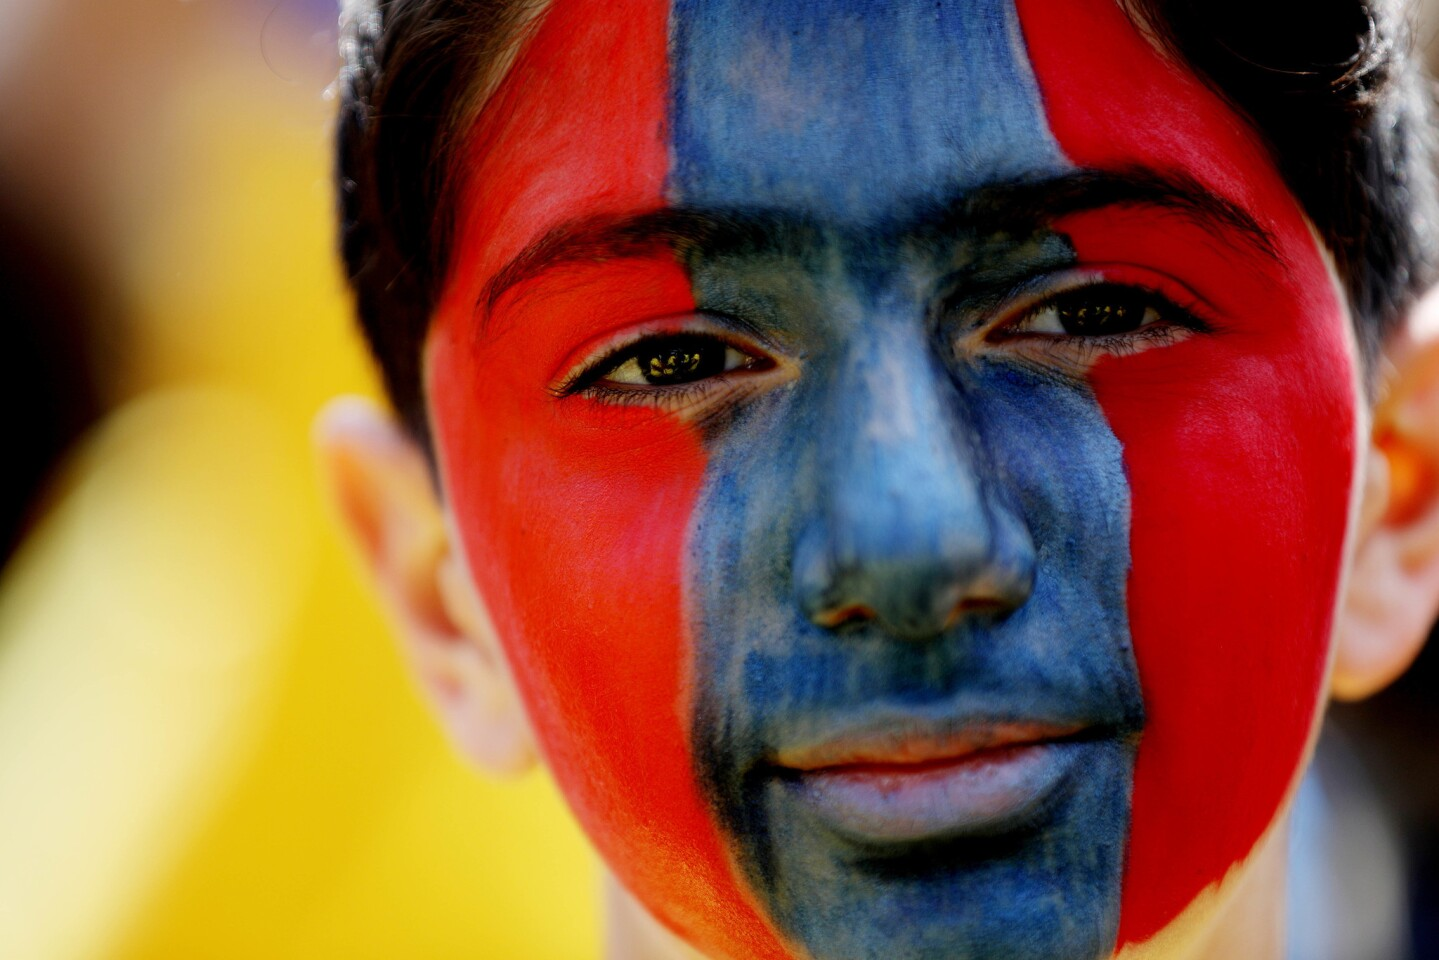 David Serobyan, 13, of Tujunga, participates in the Armenian Genocide Committee's March for Justice demonstration on April 24.